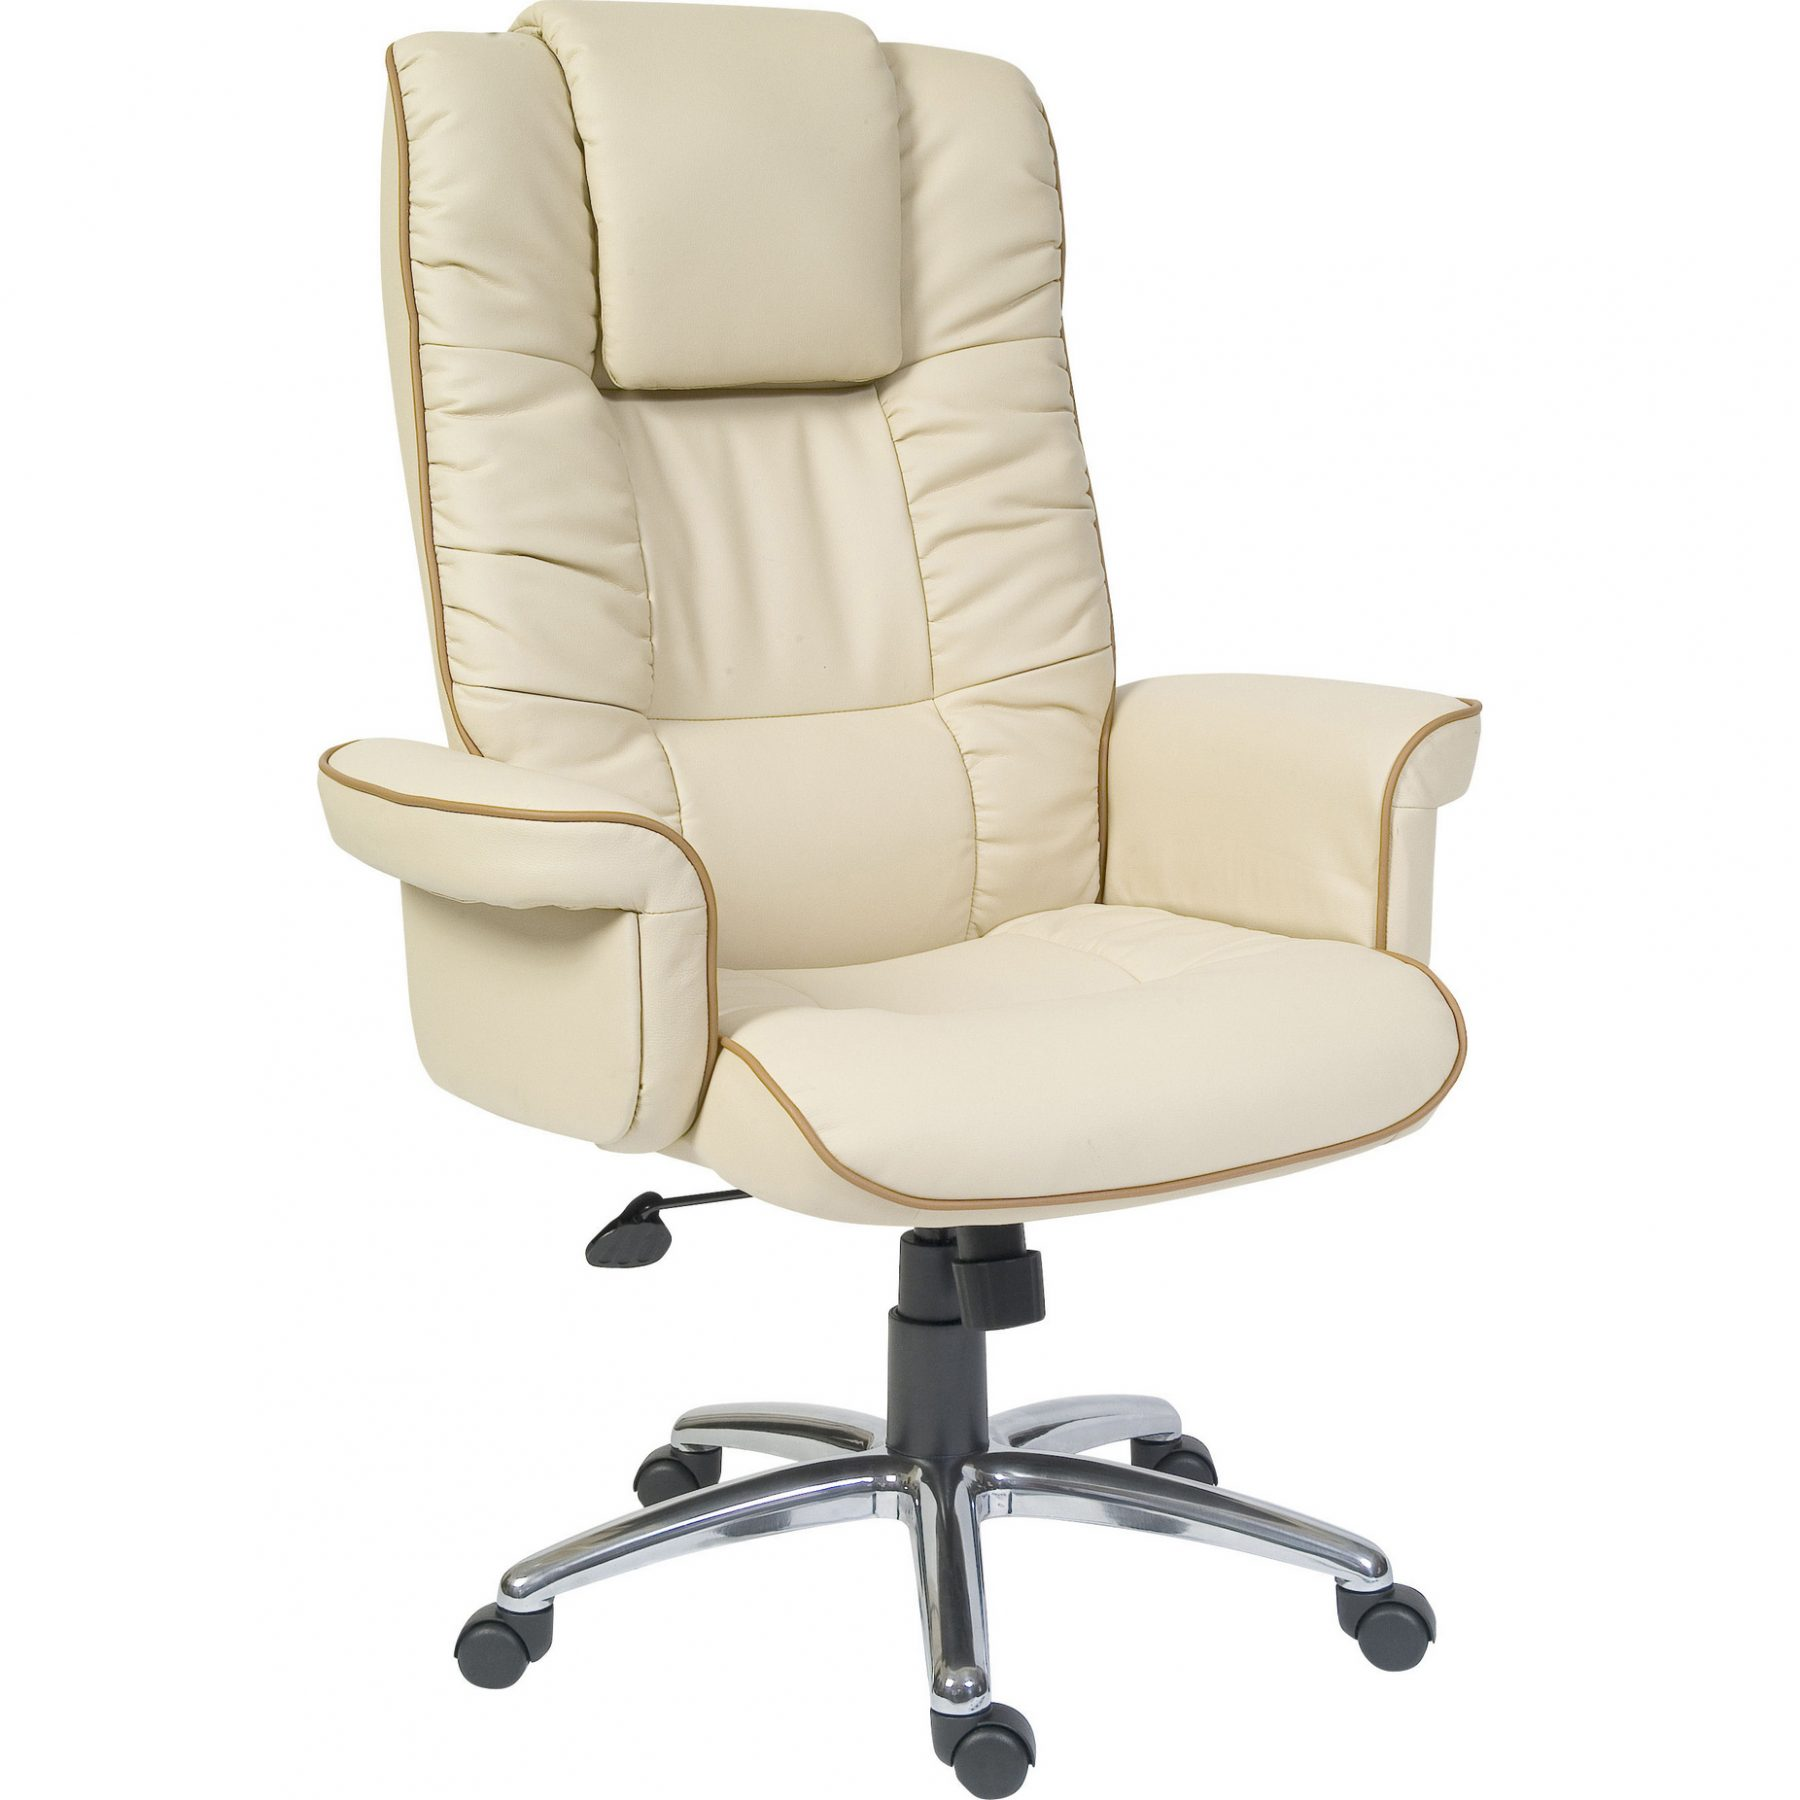 Allure Executive Office Chair Cream Leather